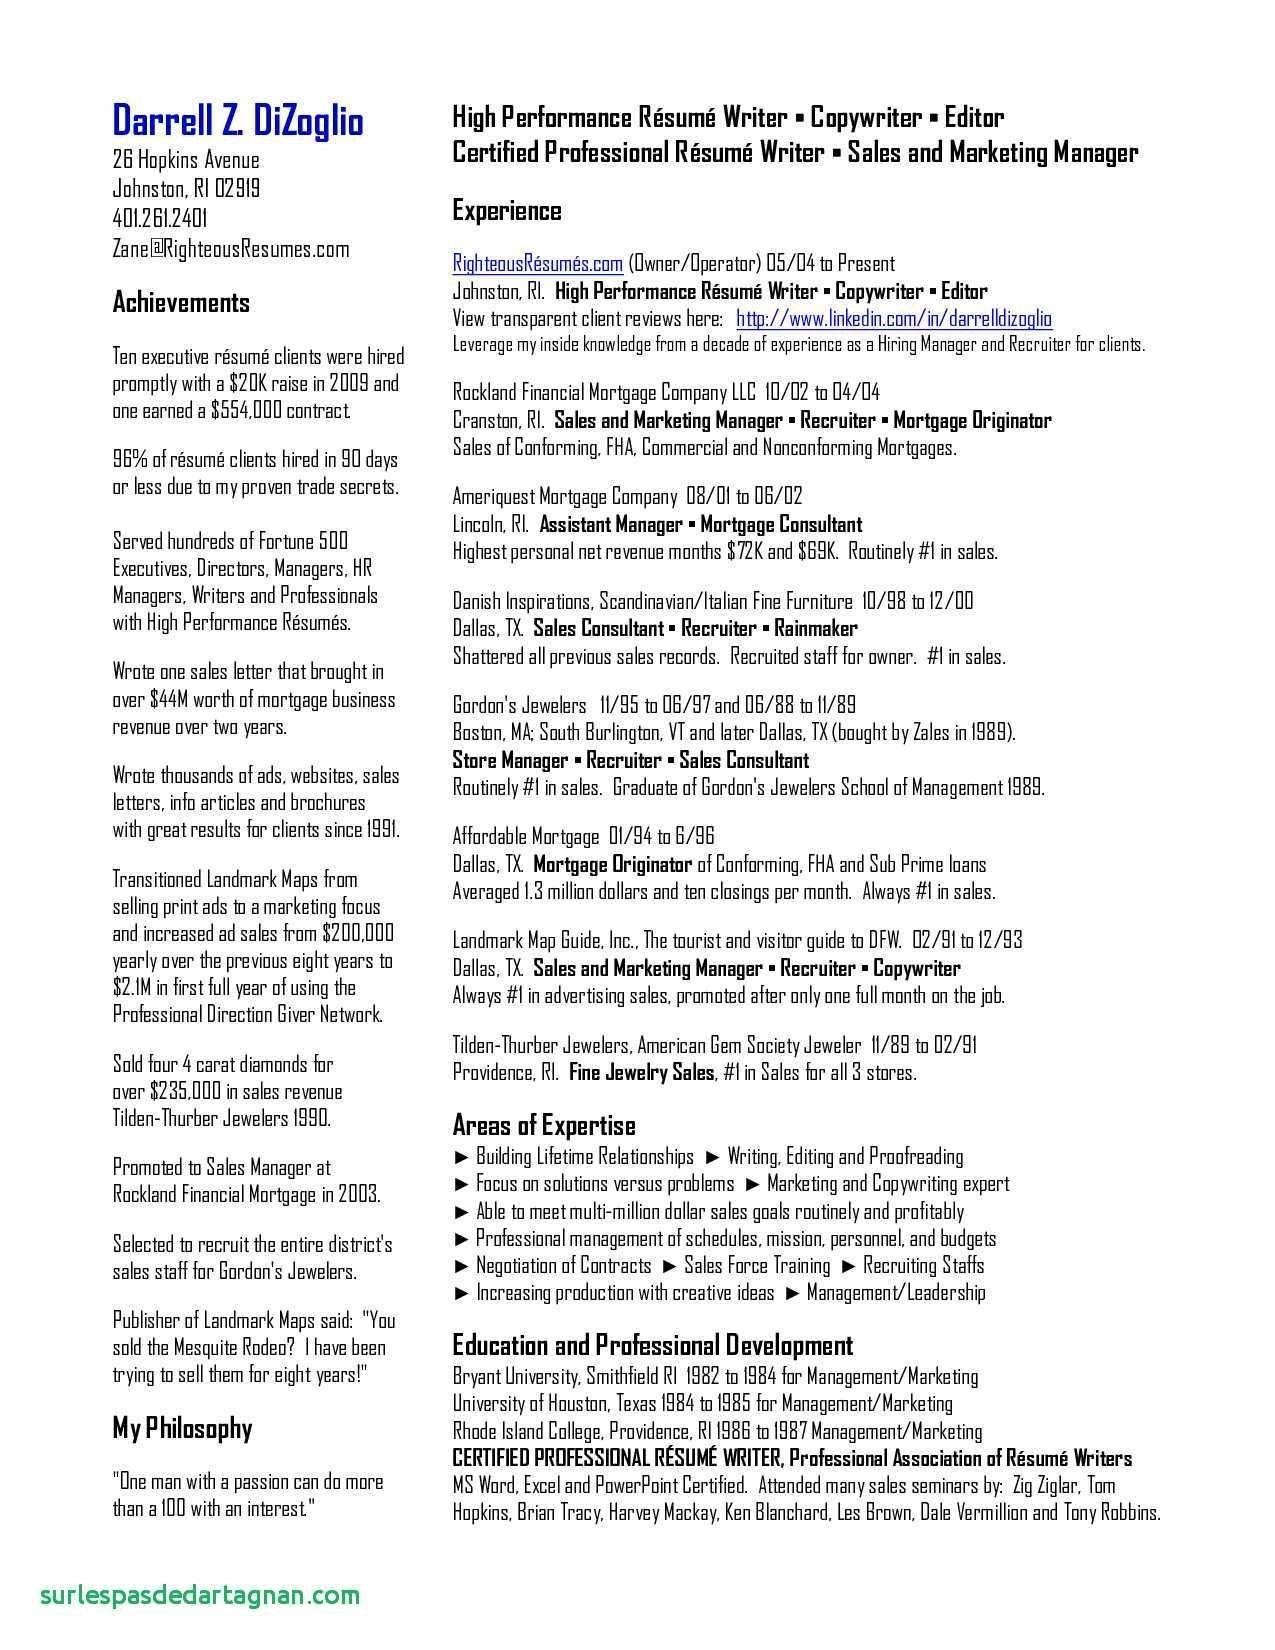 University Resume Template - Free Fill In the Blank Resume Resume Resume Examples 2dnannzaoy